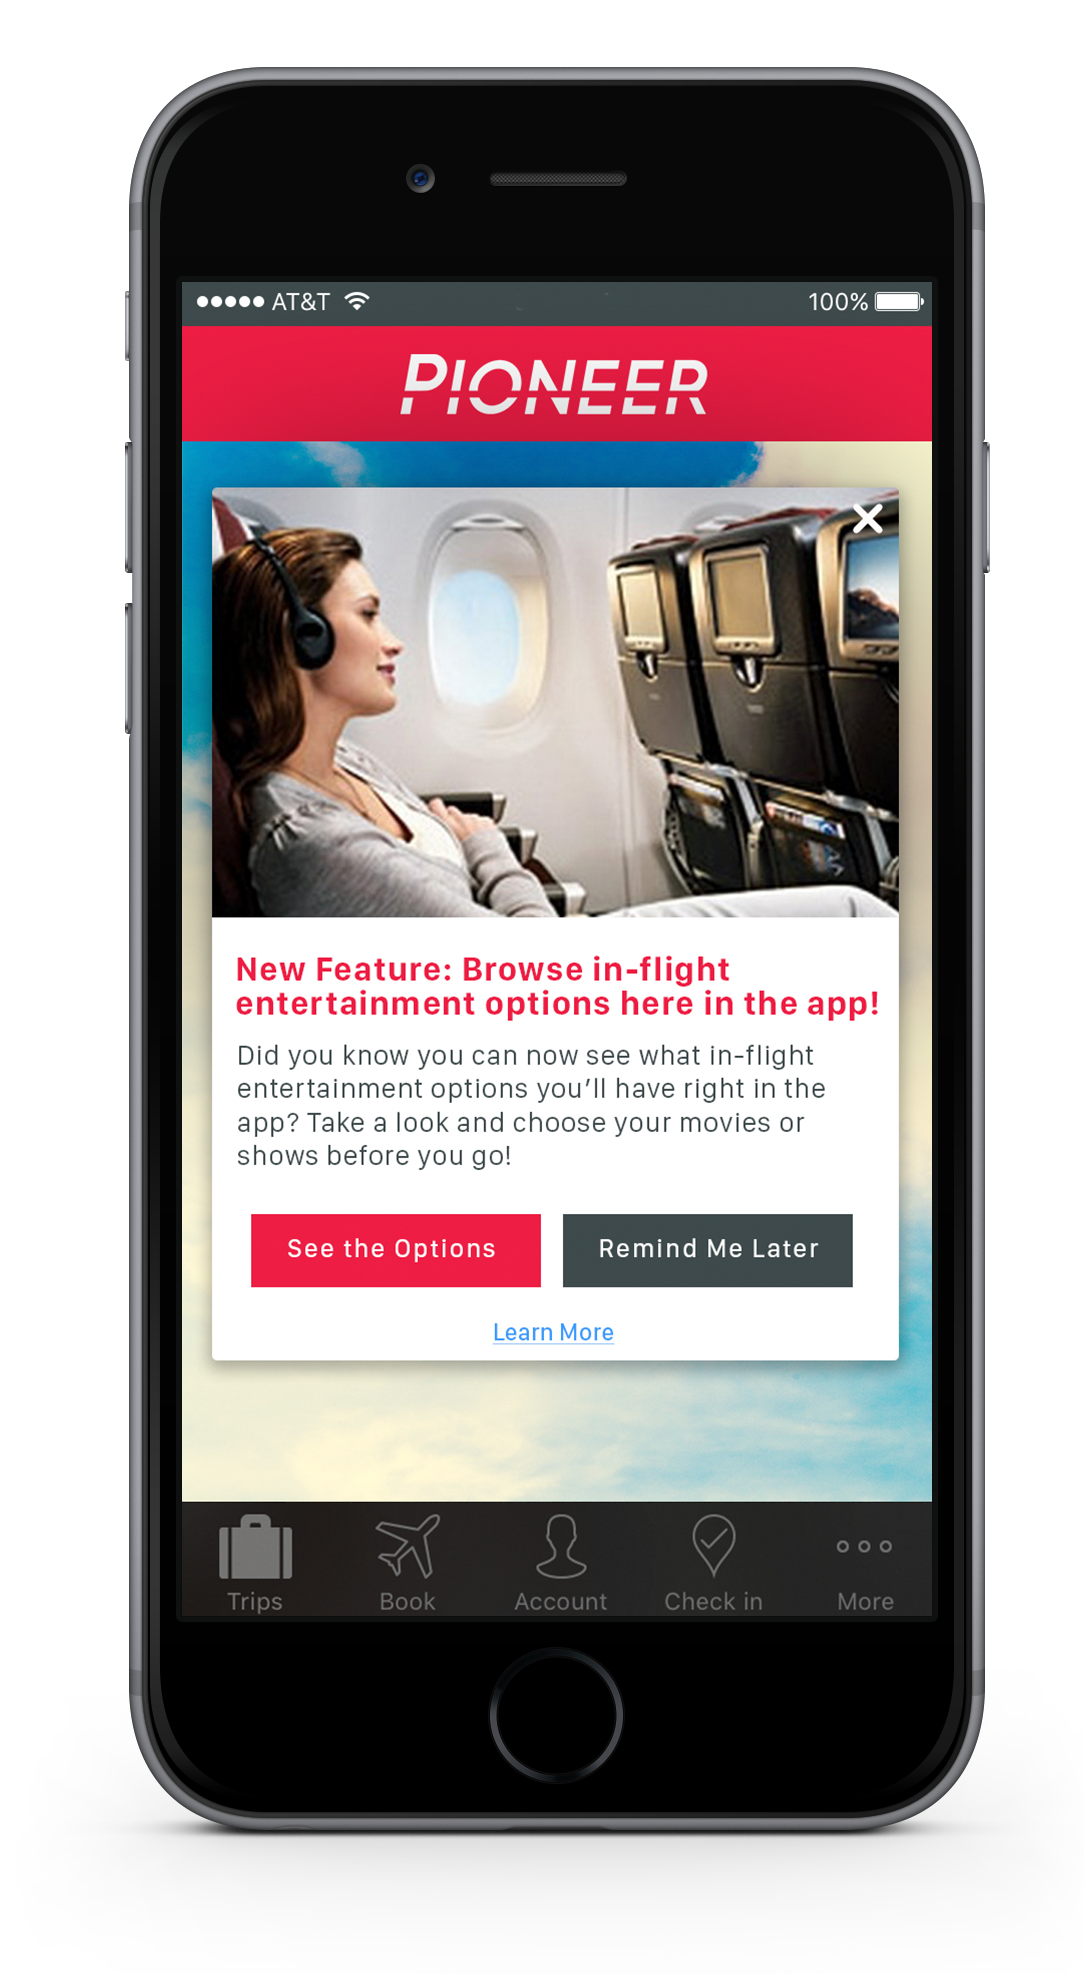 airline-app-in-app-messaging-example